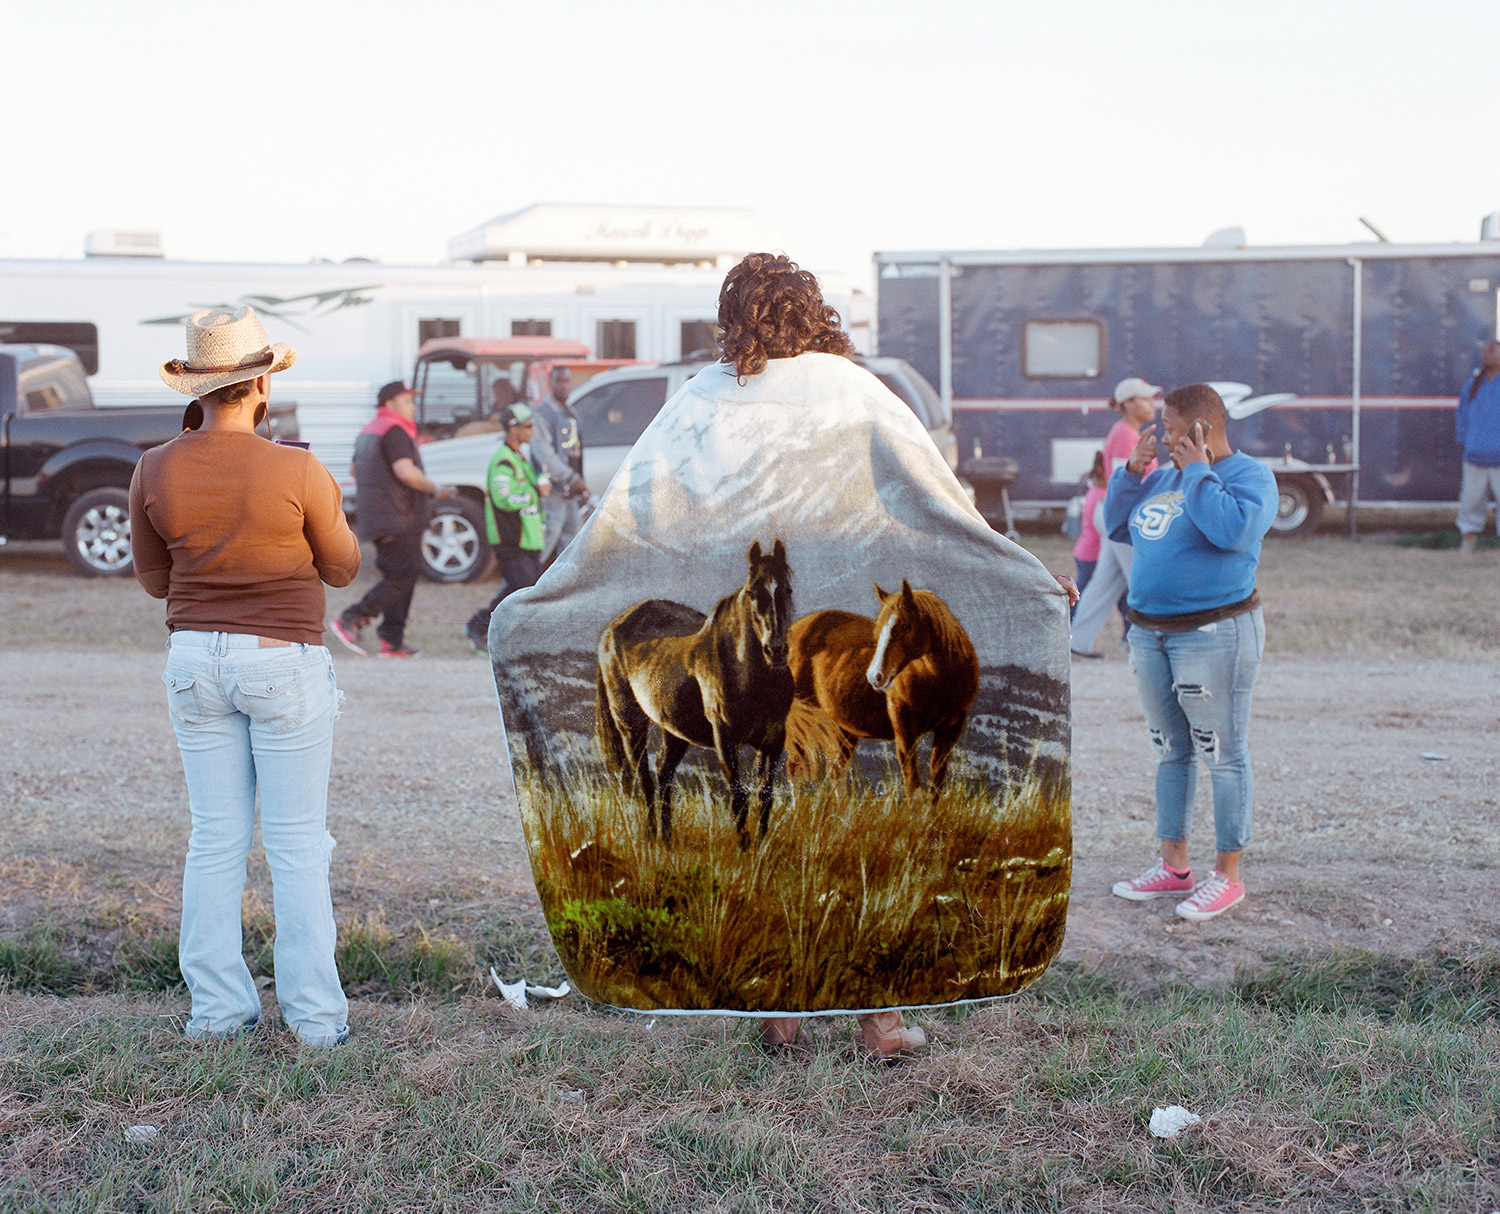 Women gather at a trail ride in Southern Louisiana. 2014